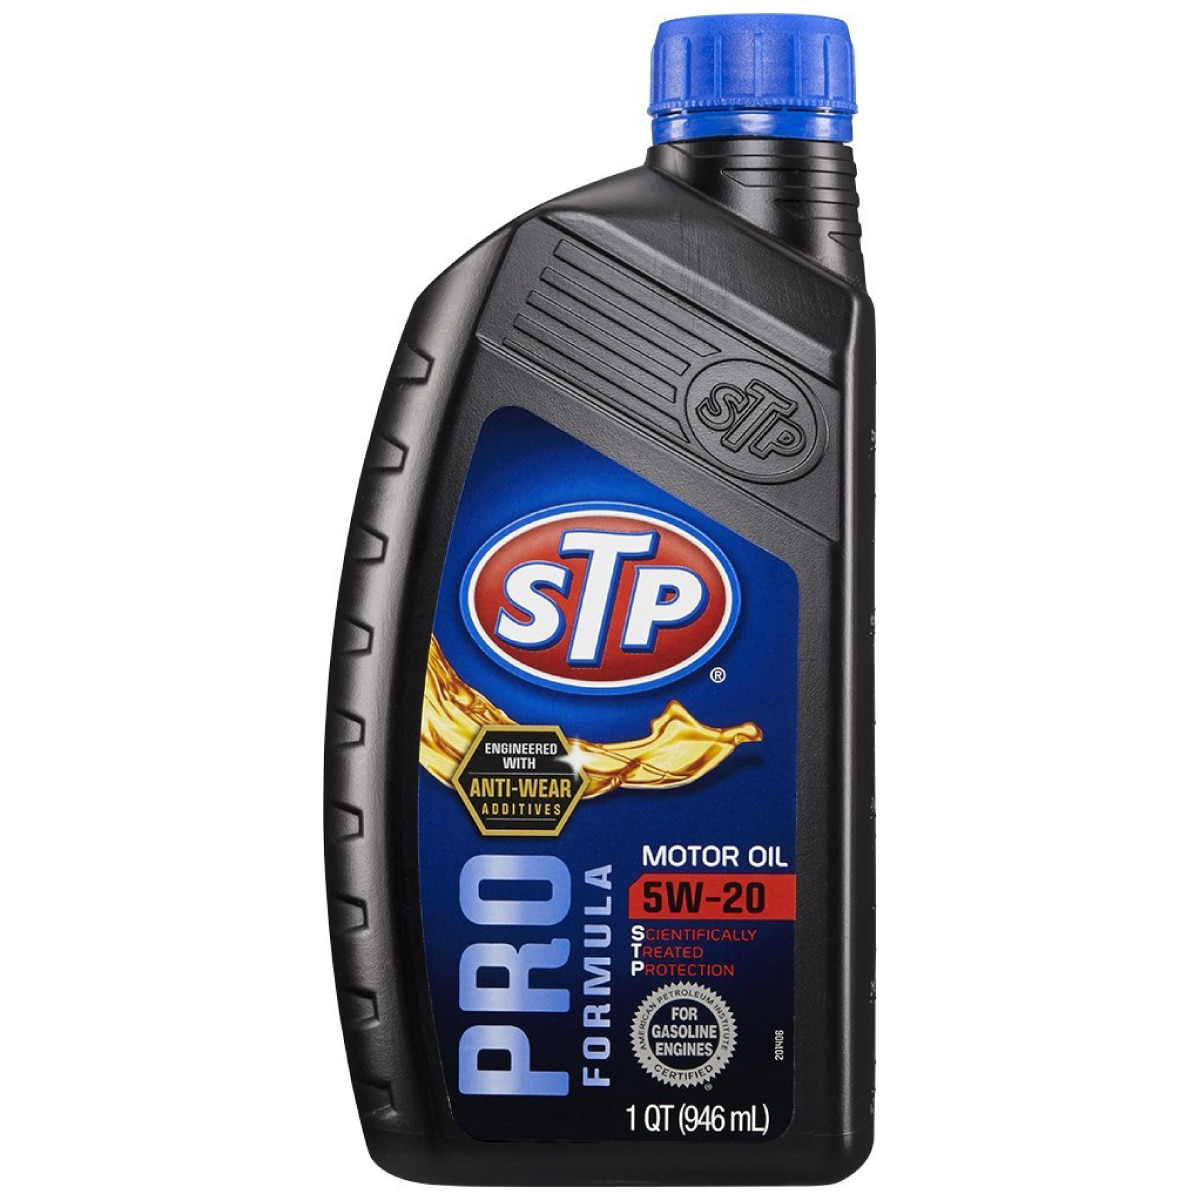 Motor Oil Conventional 32 Oz STP